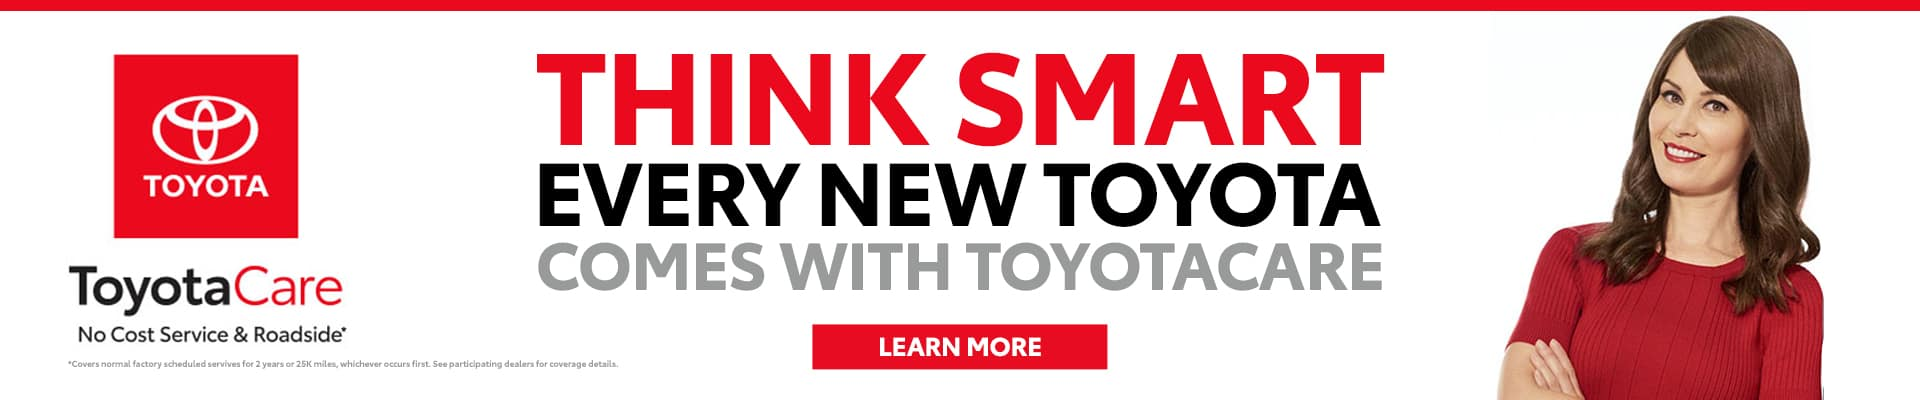 Think smart - Every new Toyota comes with ToyotaCare - Learn More